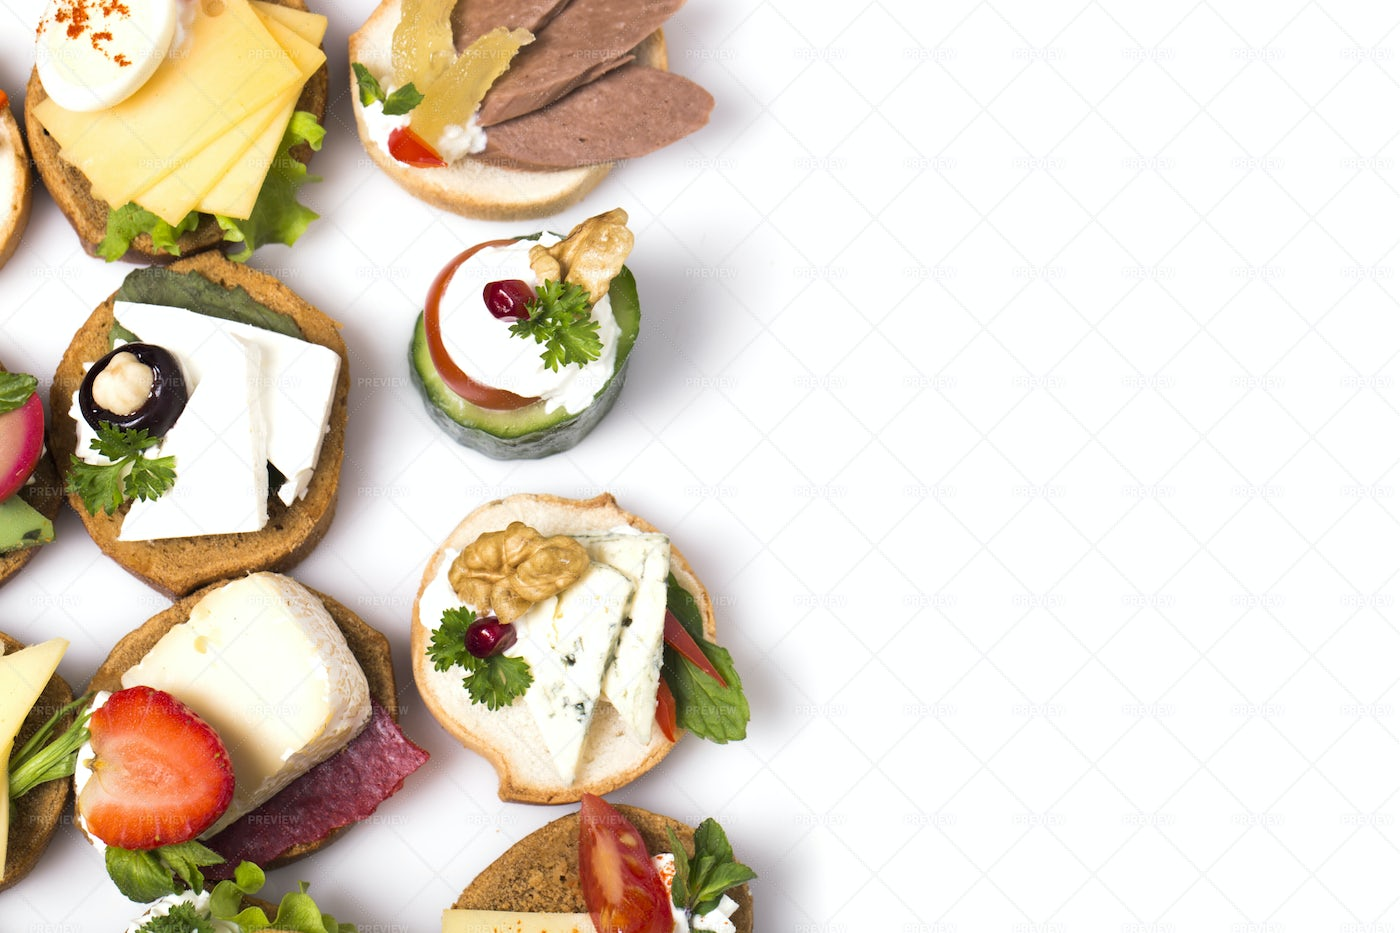 Canapes With Various Fillings: Stock Photos